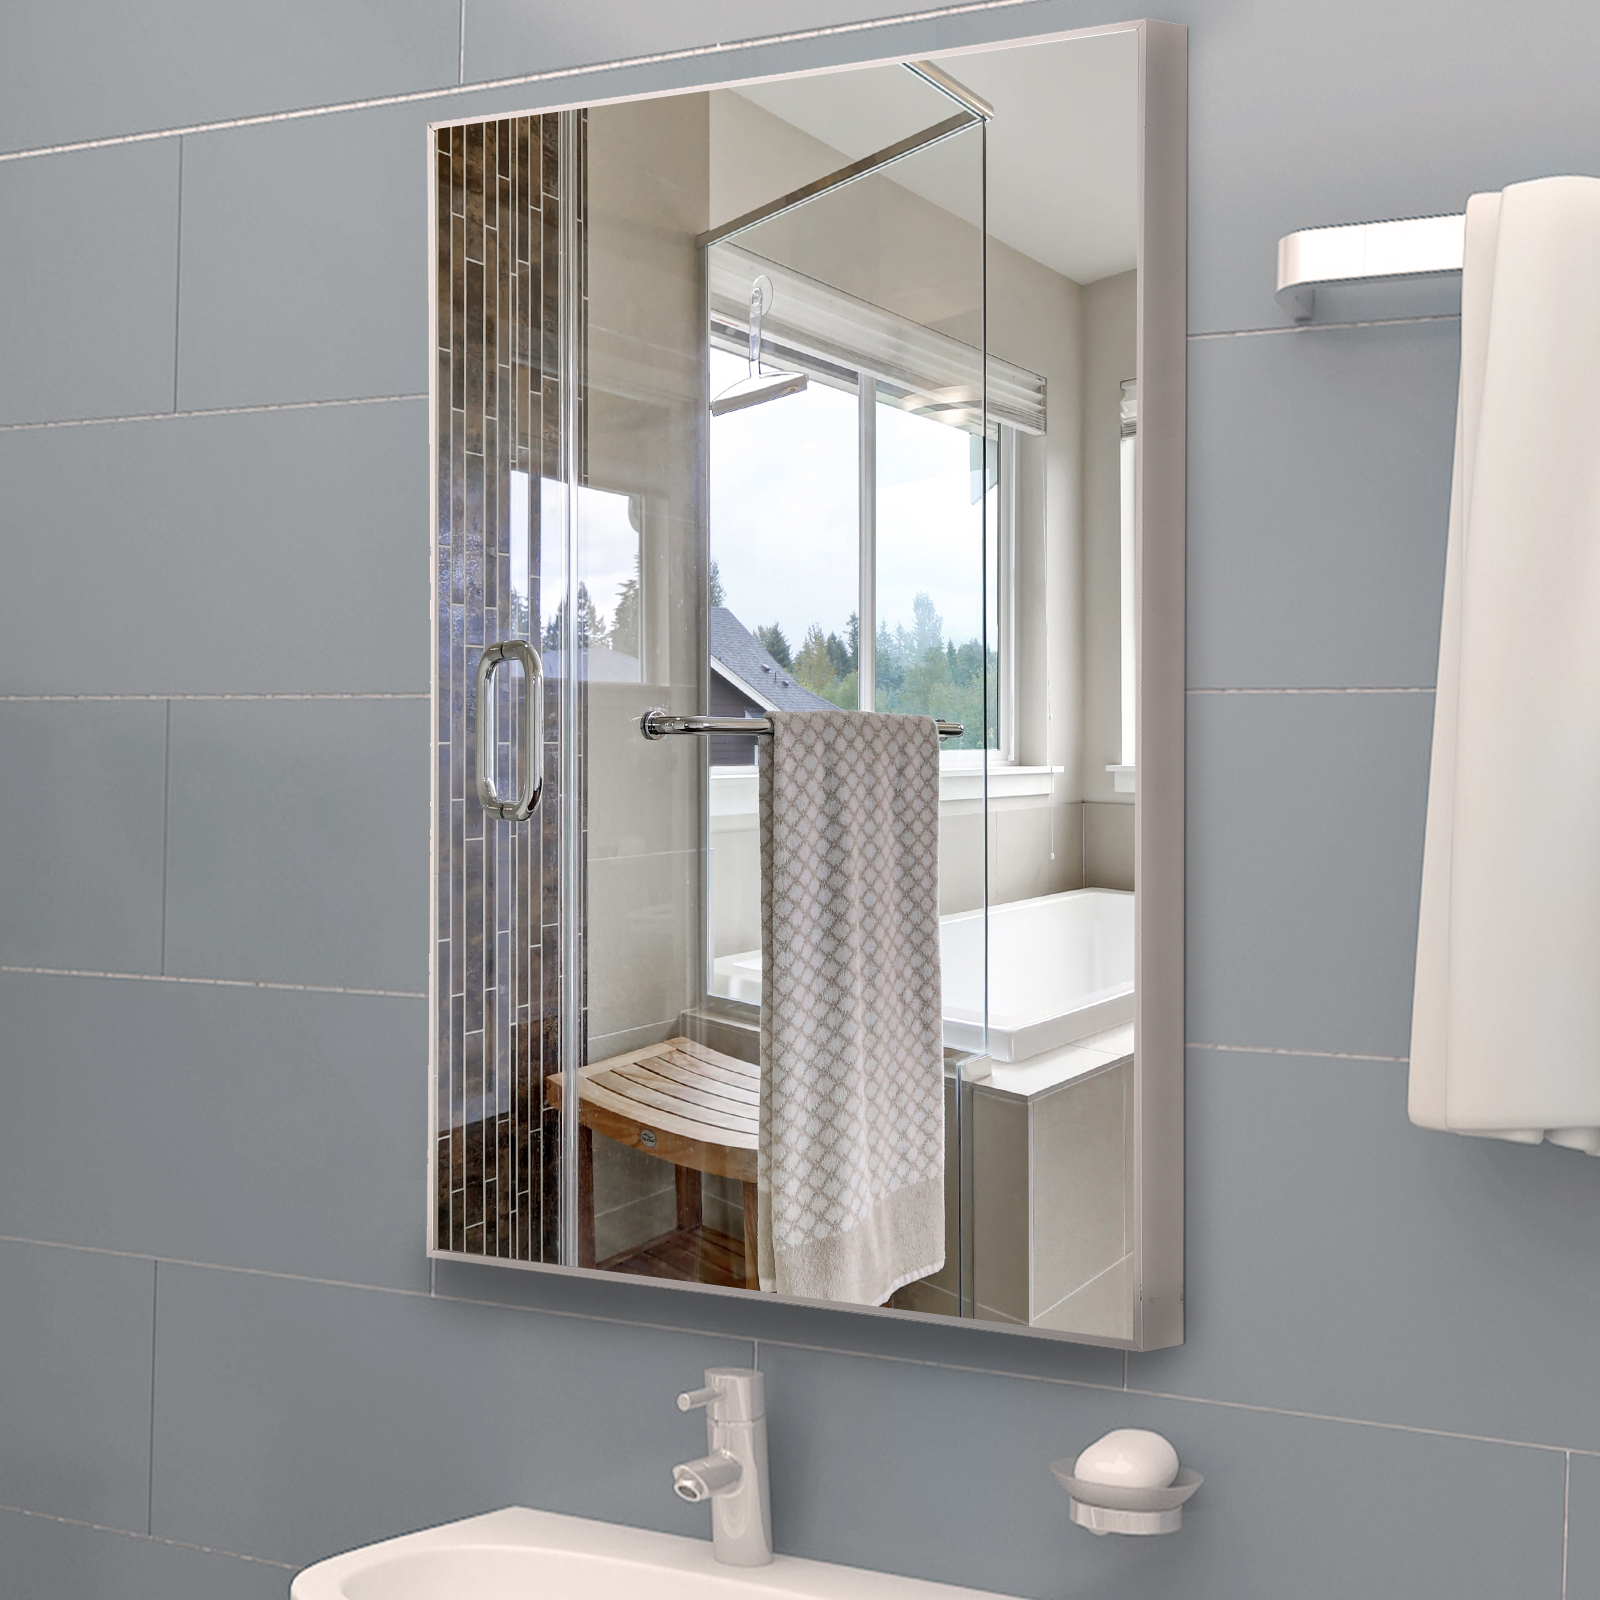 Wall Bathroom Vanity Mirror Rectangle Glass Aluminum Alloy Frame Beveled Mirror On Sale Mirror Online Buy From Dingding134 48 46 Dhgate Com